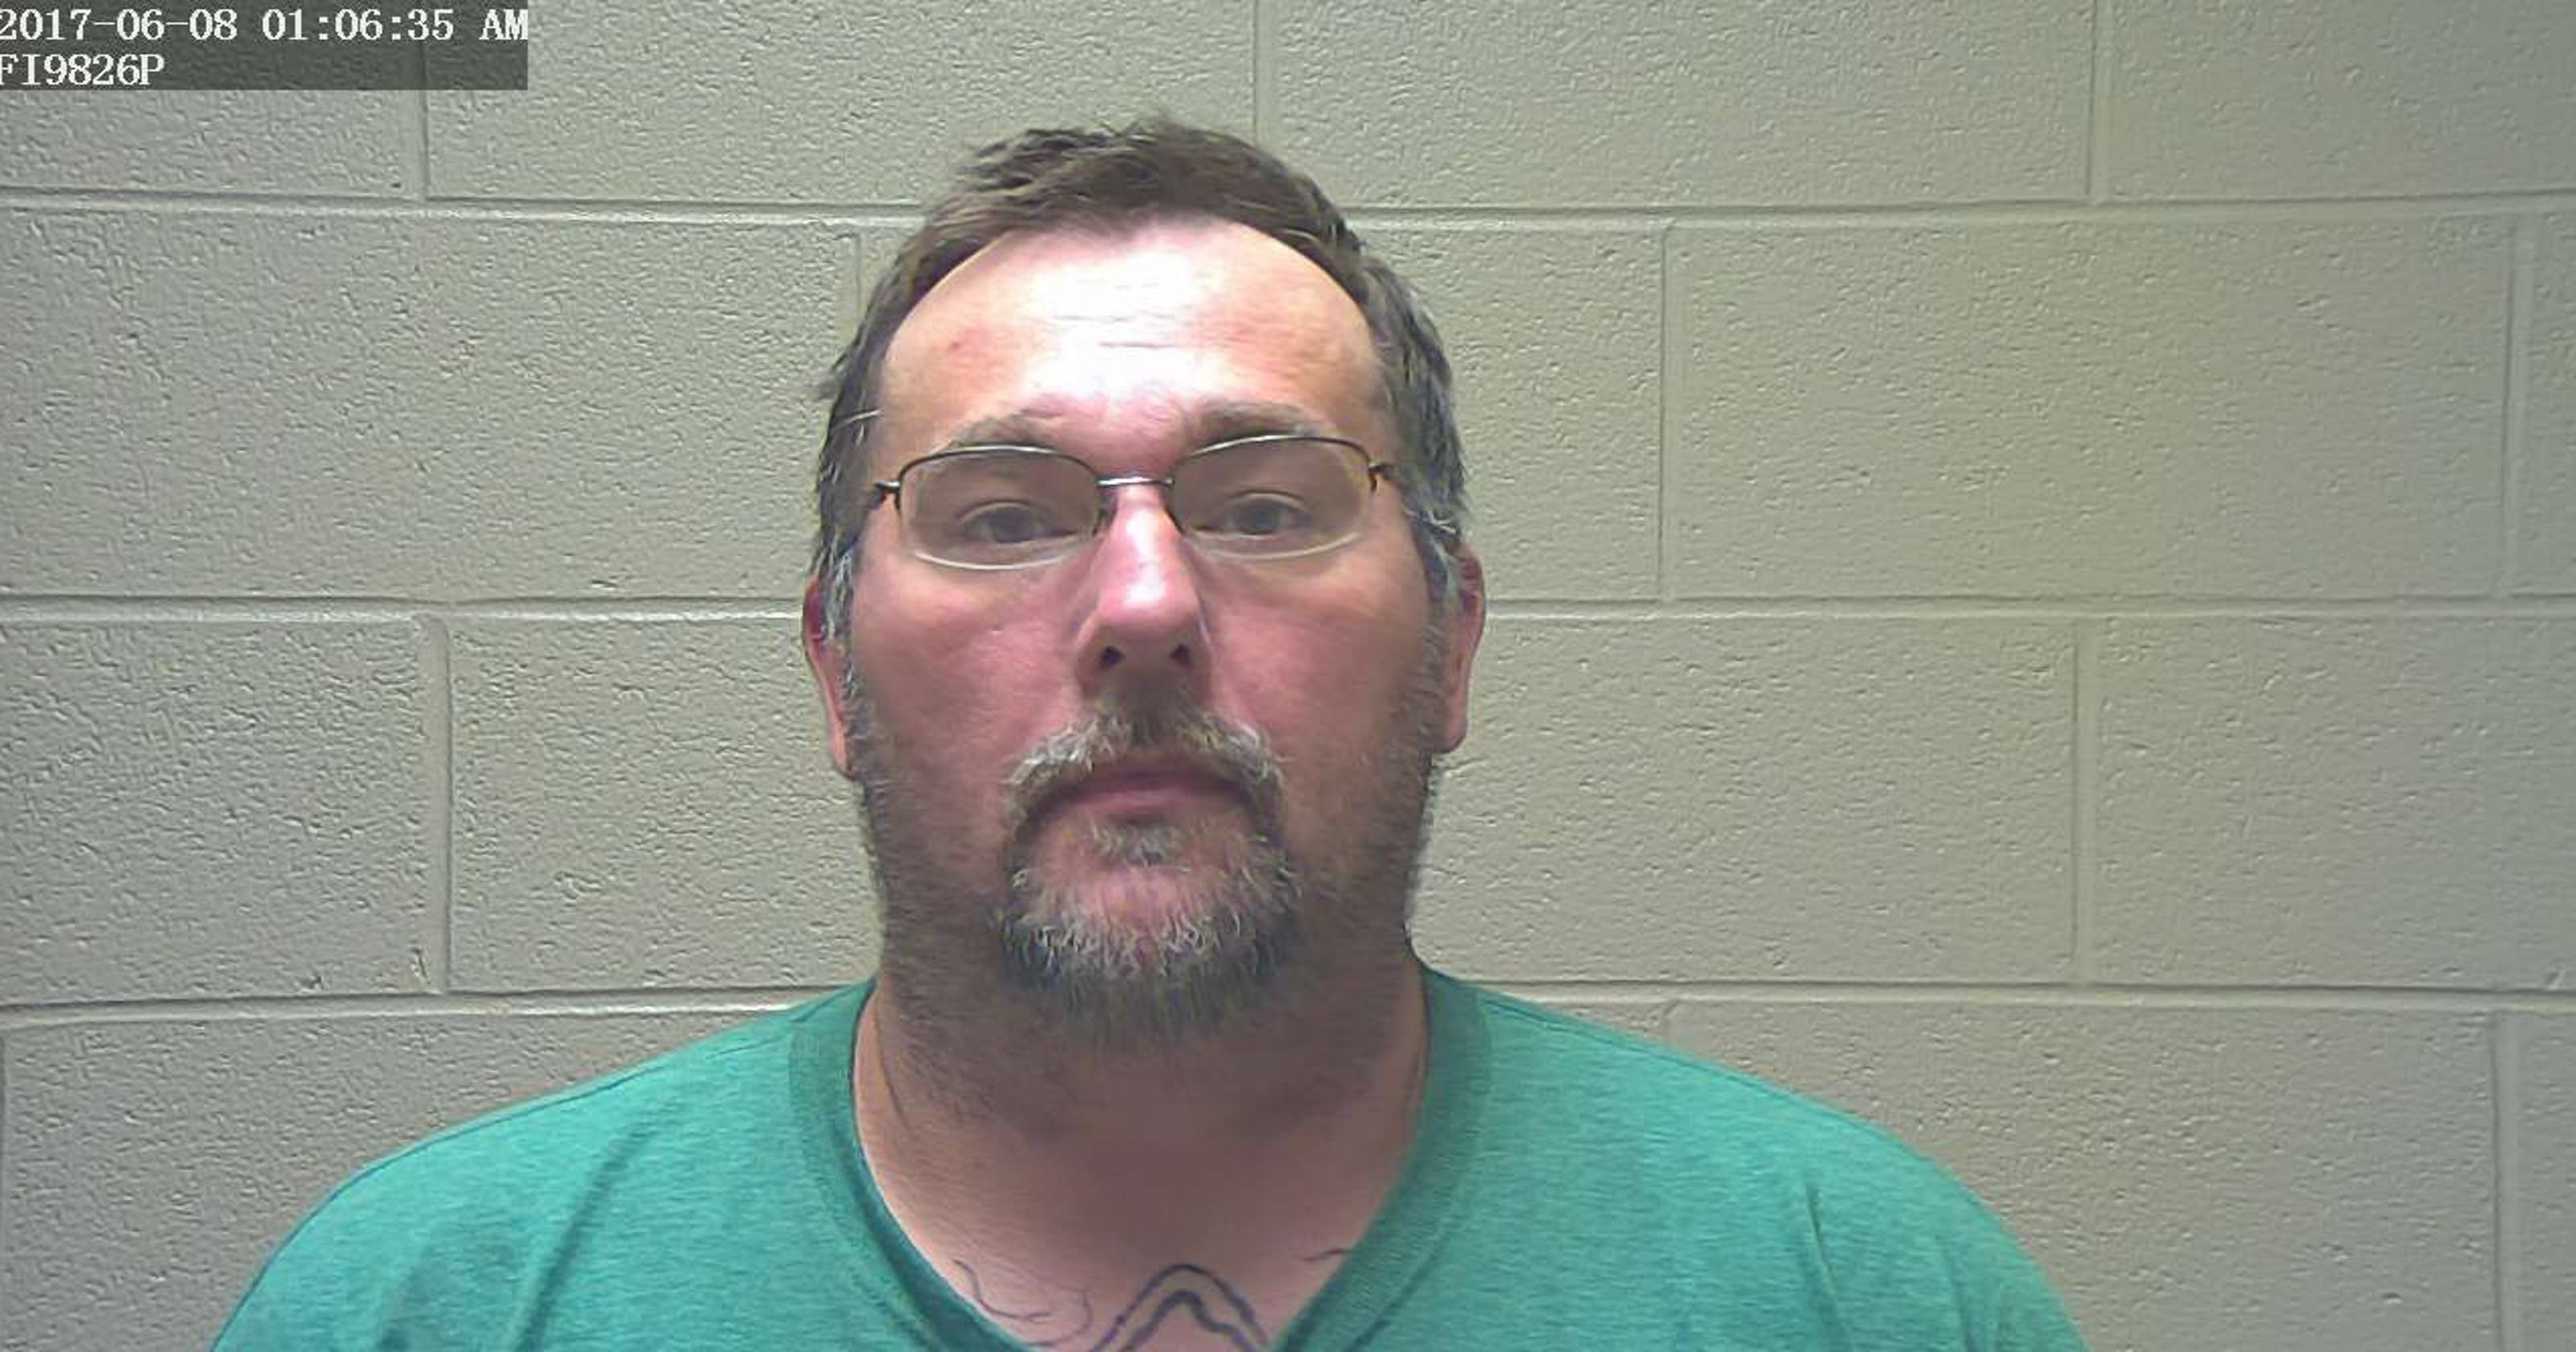 Man busted with over 1,000 fake drugs at Bonnaroo: 'I'm doing God's